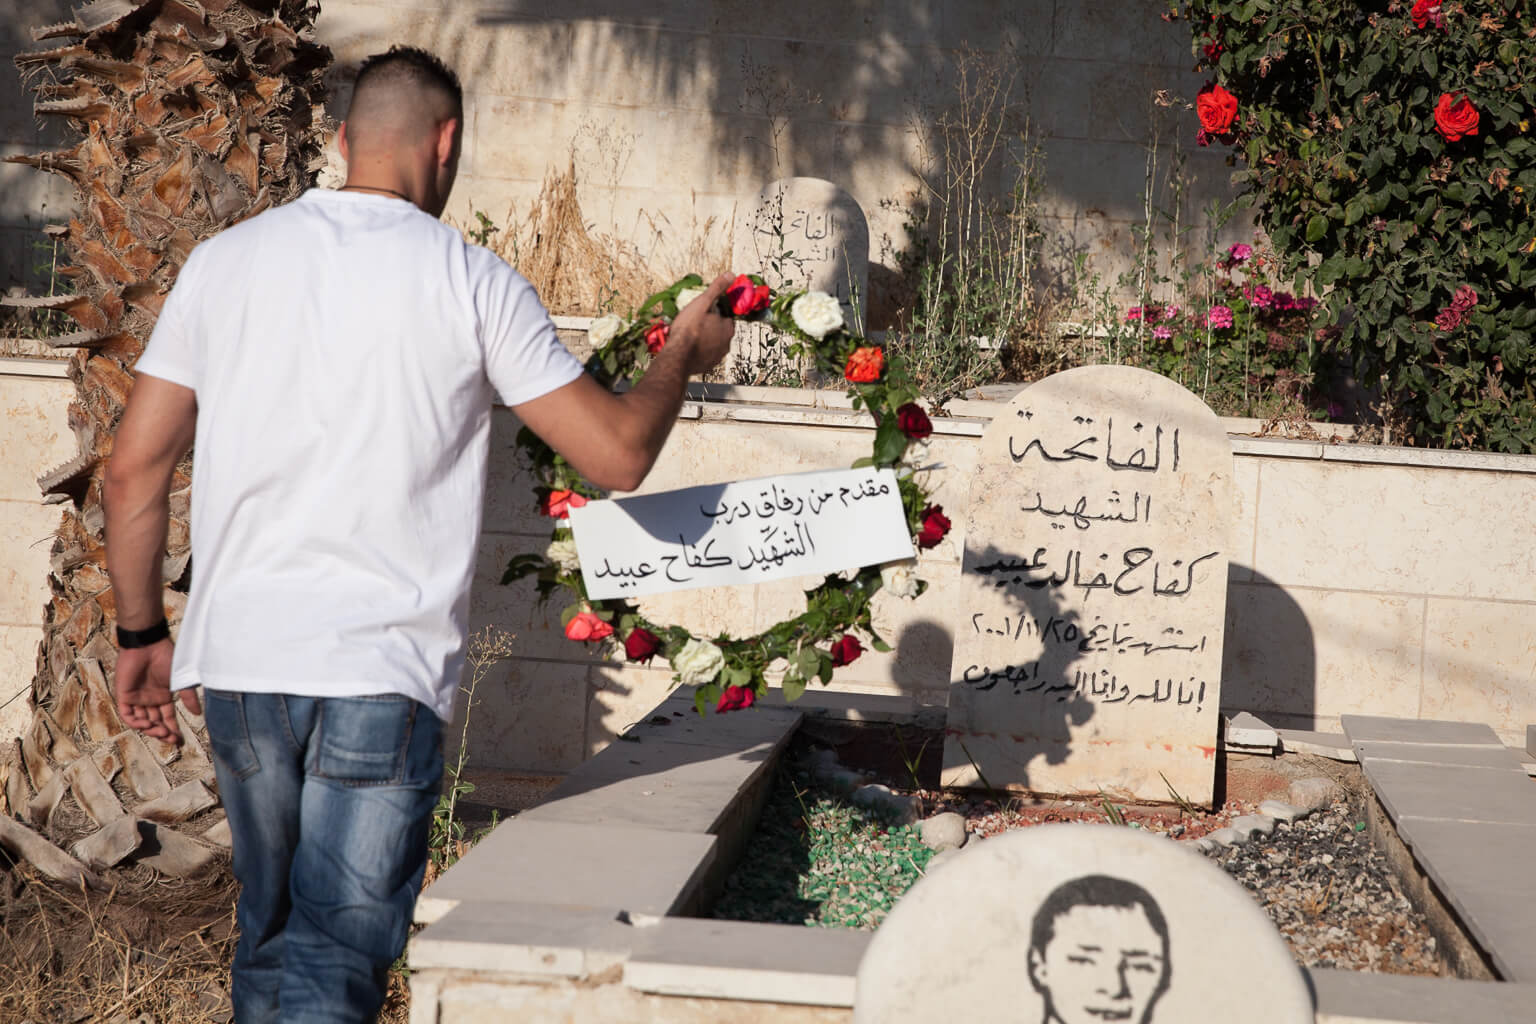 """Milad Obaid hangs a wreath on the grave of his brother, Kifah, who was killed by Israeli forces in 2001 while throwing stones. Kifah was 12 years old. """"Every Eid instead of celebrating like everybody else in the world, we come here,"""" Milad says. """"Nowadays there is no normal world, all the world is broken. Al Eid is a holiday that is supposed to be happy, but we come to the cemetery. We grieve for those we lost, then we go visit our relatives. And this is our life.  It's normal."""" (Photo by Rebecca George)"""